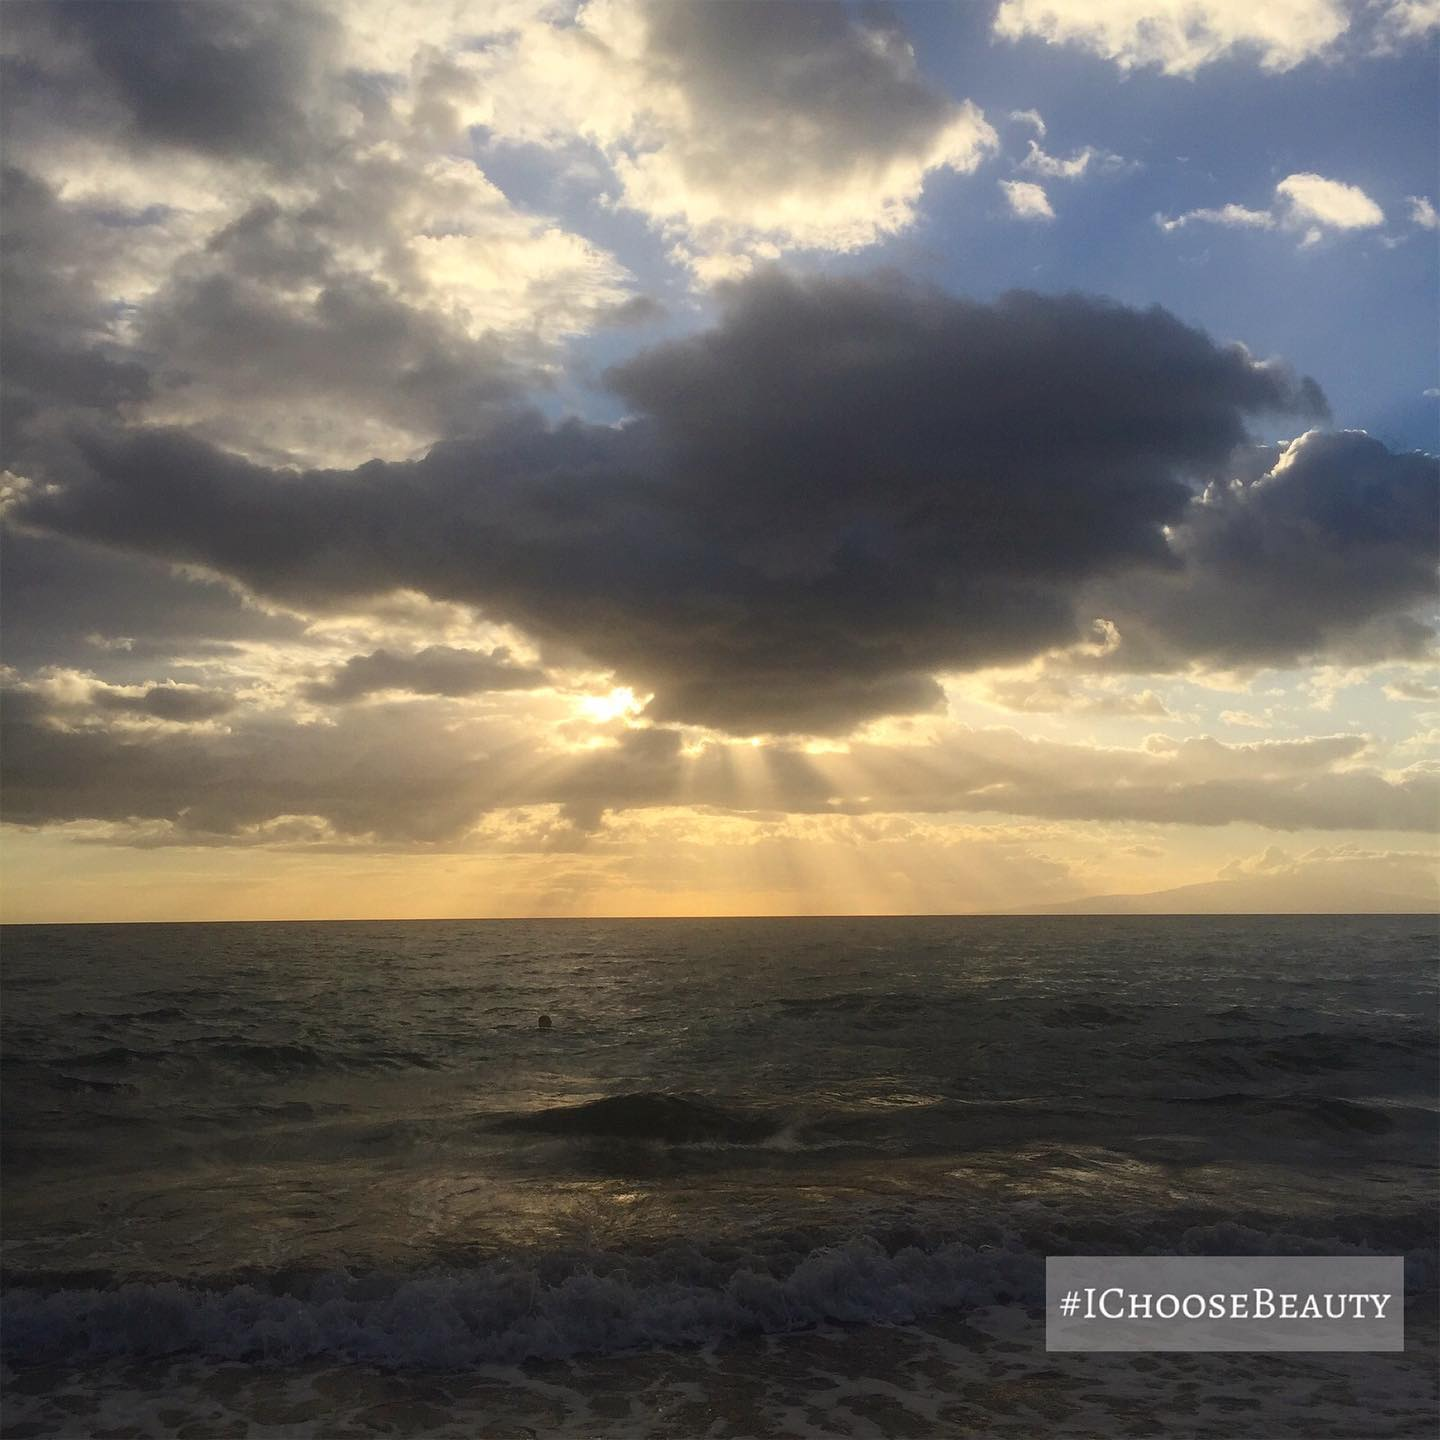 Look at the sun's rays beaming down through the dark clouds - a reminder to look for the light during difficult times. ️️ #ichoosebeauty Day 2504